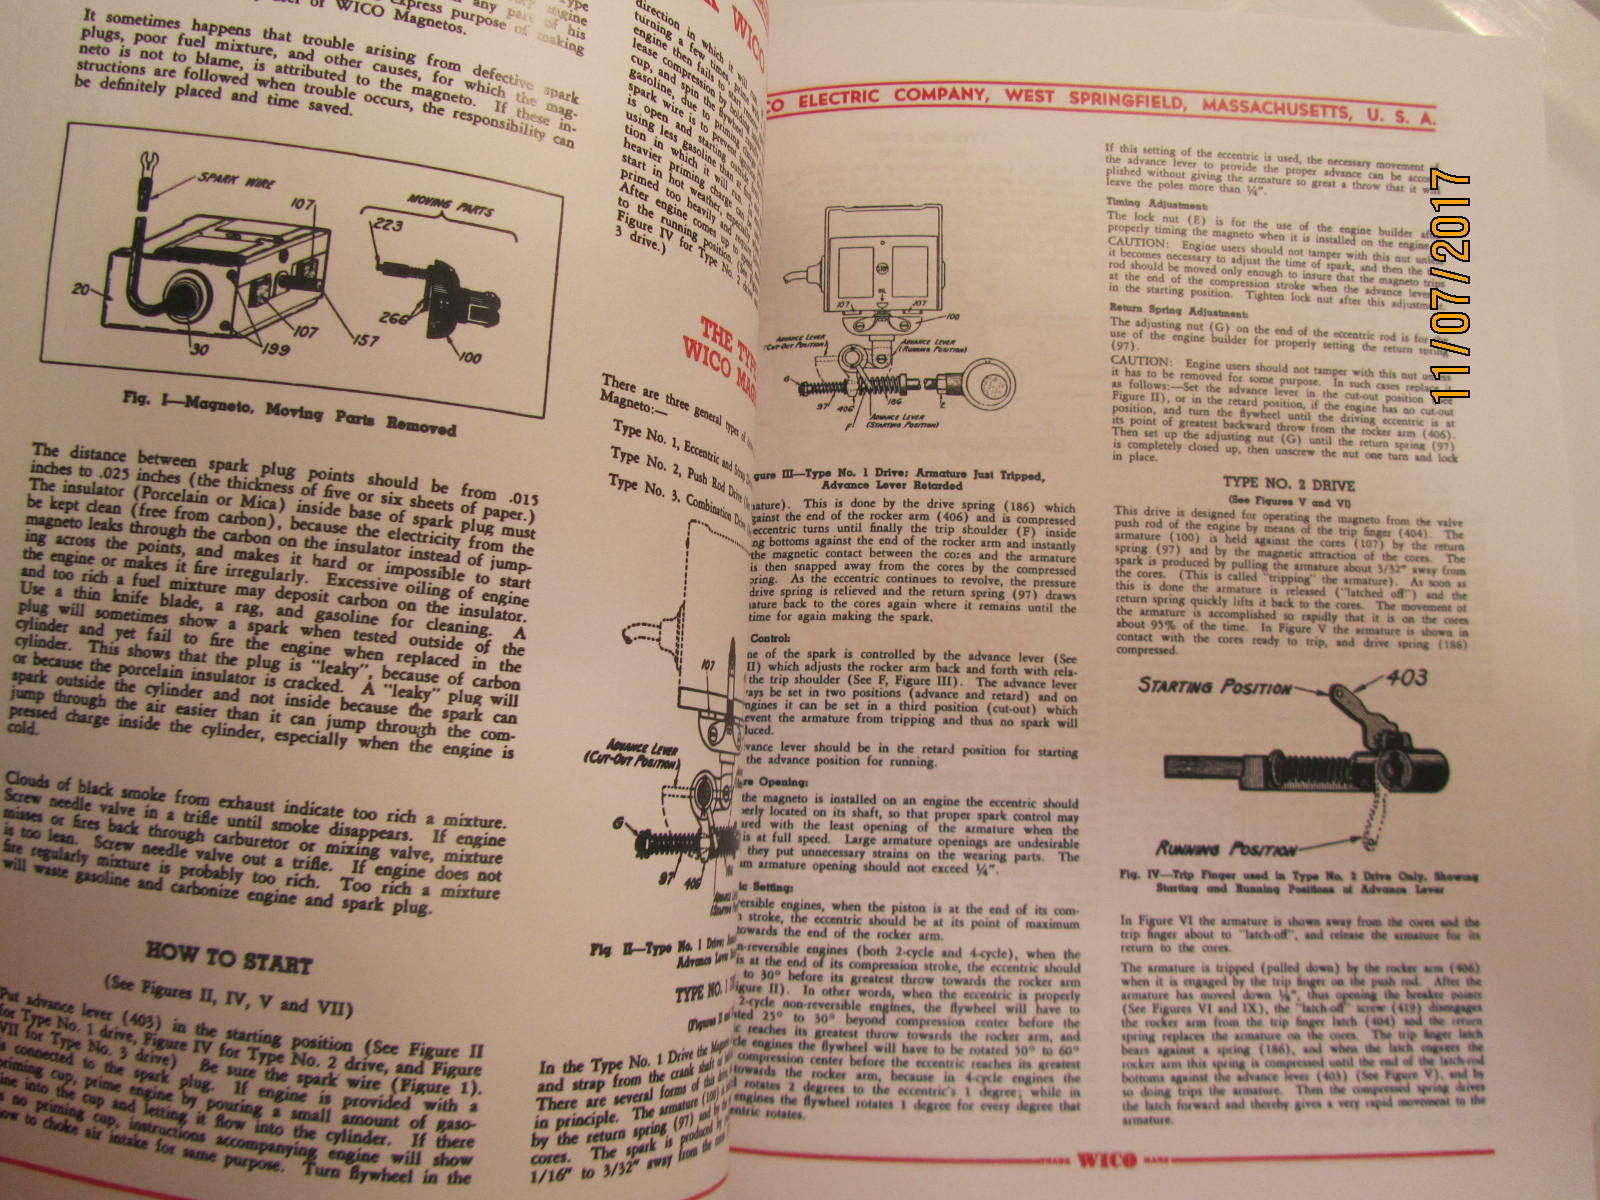 Color 1929 Wico Ek Magneto Service Parts Manual Hit Miss Engines Wiring Schematic